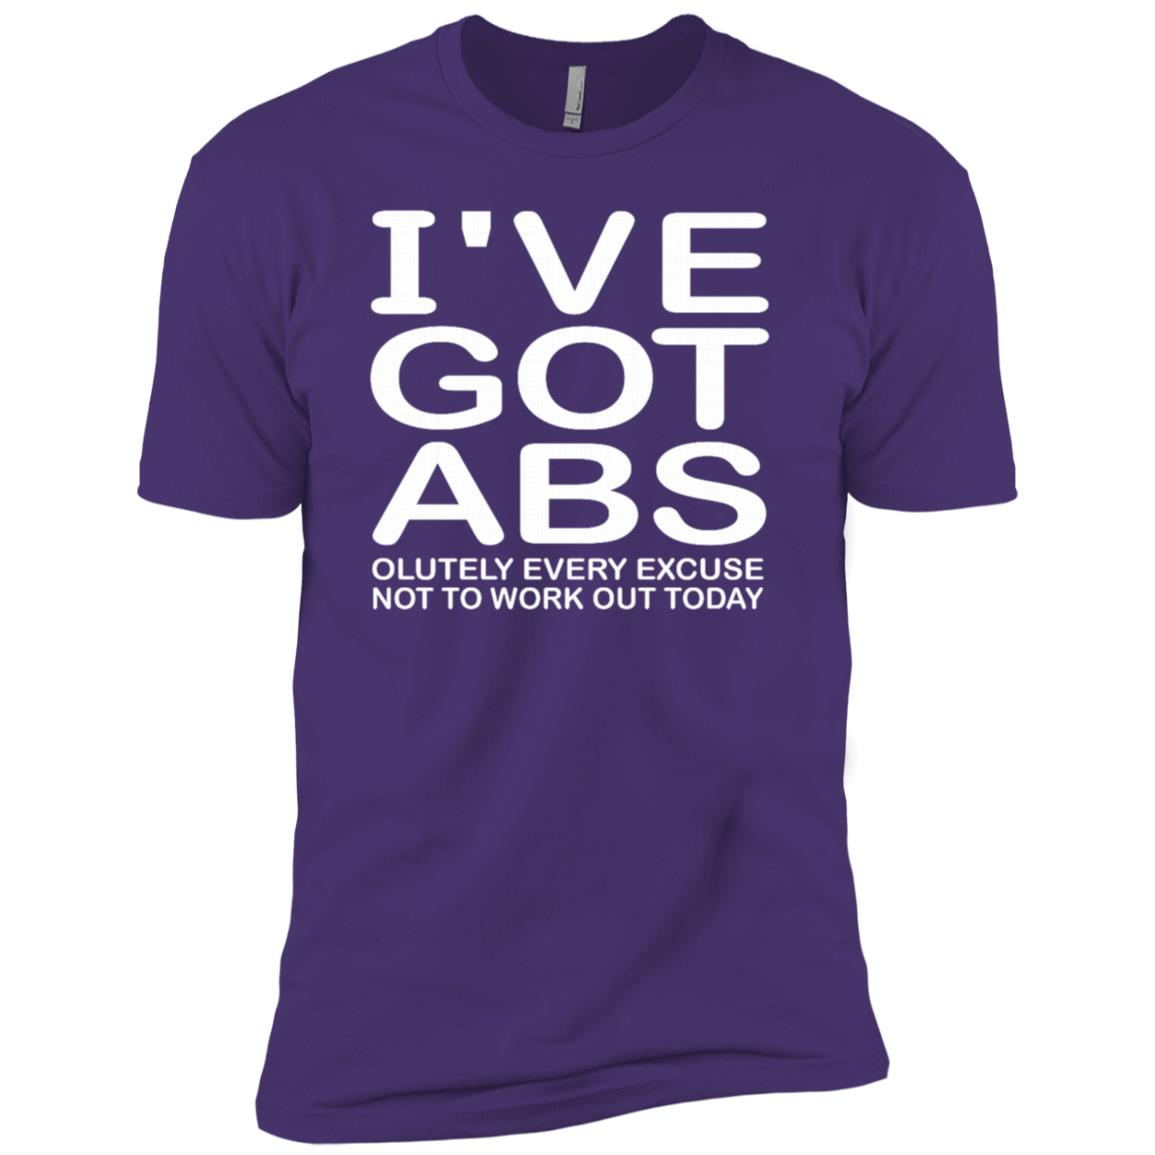 I've Got Abs-olutely Every Excuse Not To Work Out Today Men Short Sleeve T-Shirt